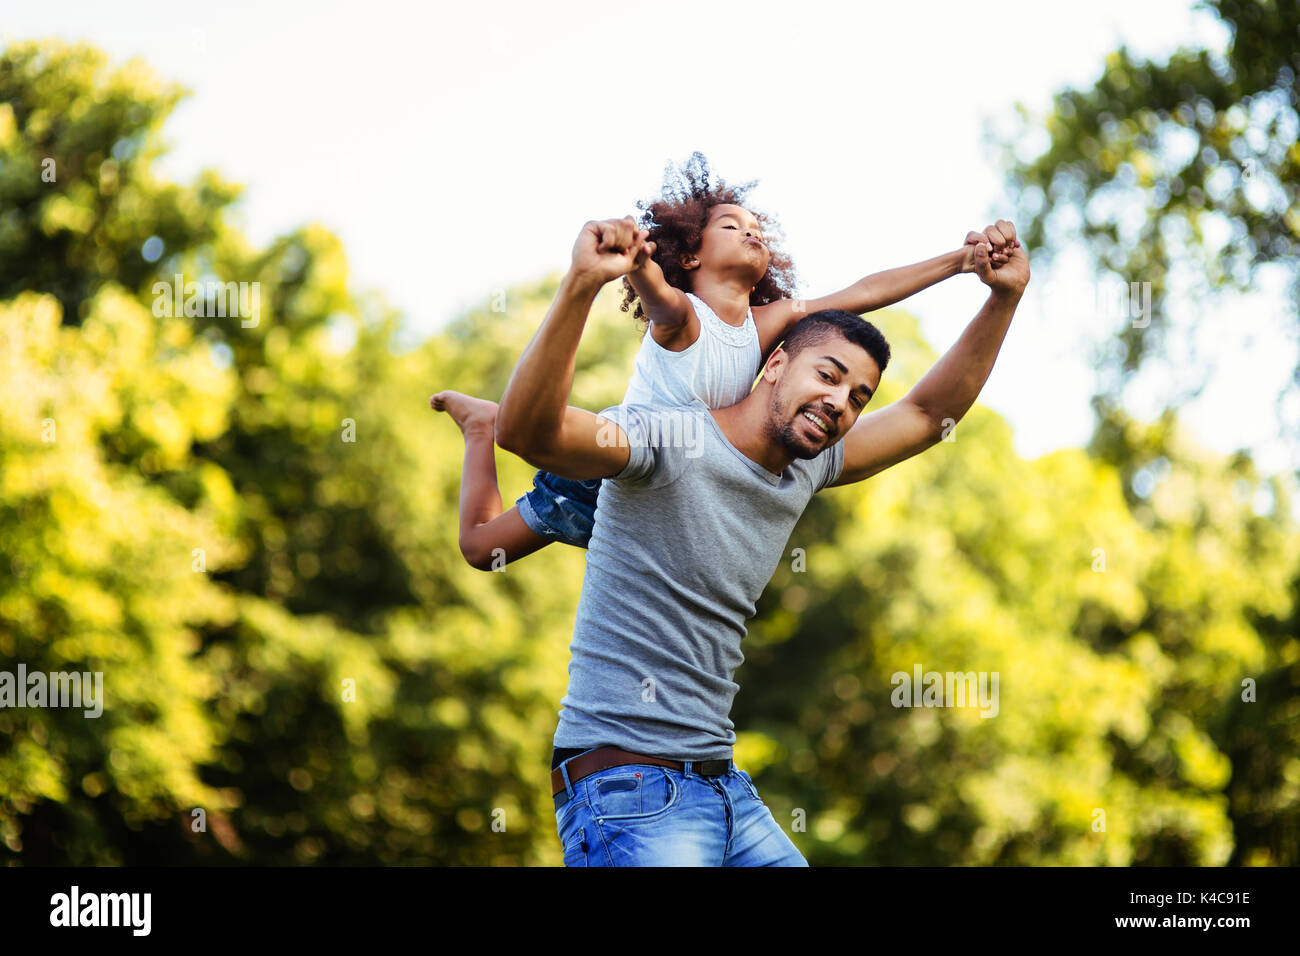 Portrait of young father carrying his daughter on his back - Stock Image